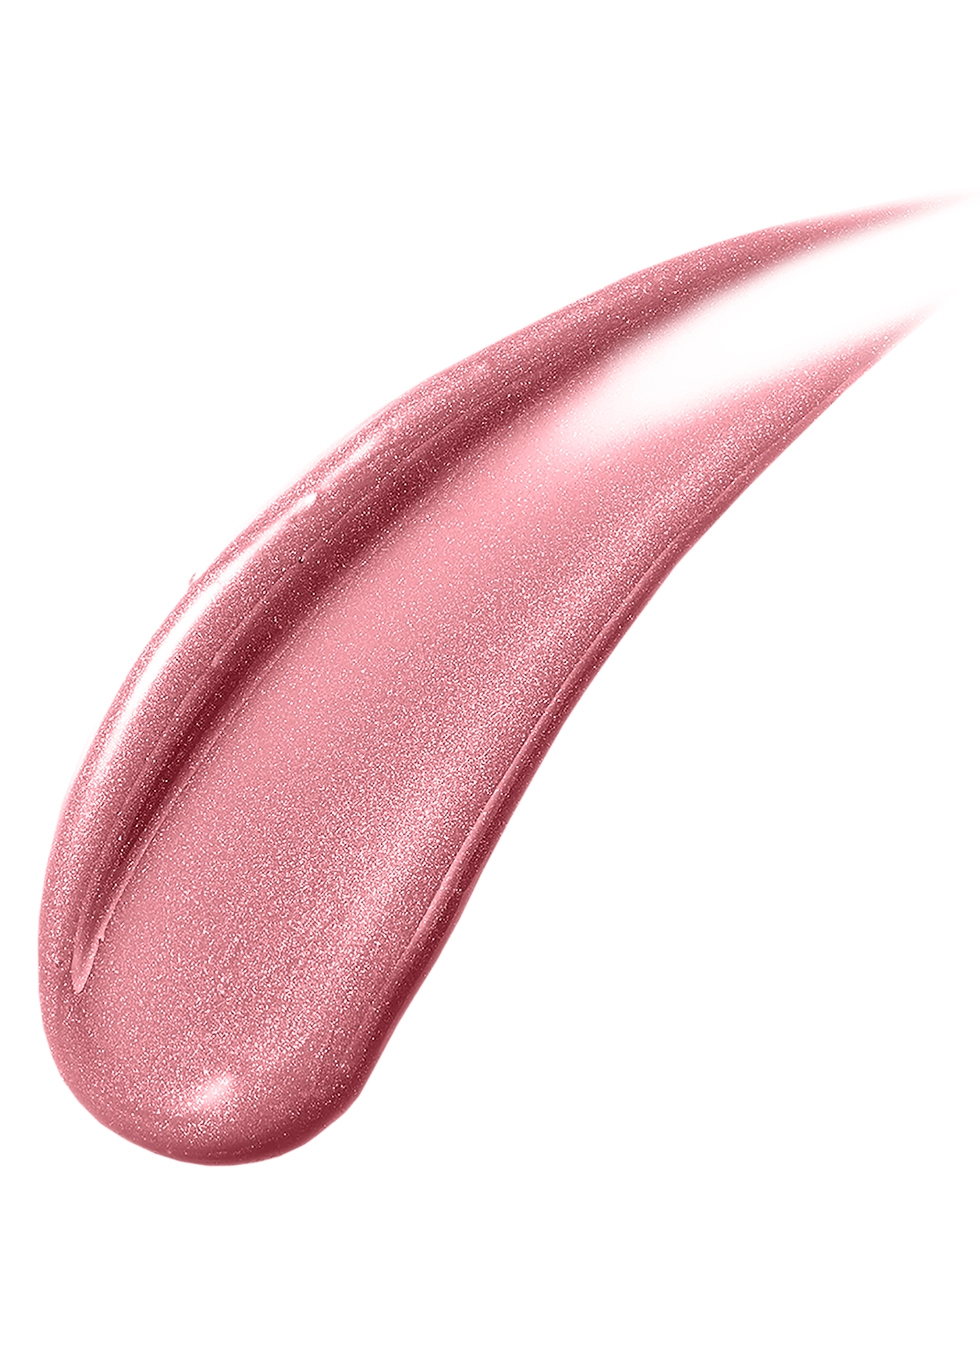 Gloss Bomb Universal Lip Luminizer - Fu$$y - FENTY BEAUTY